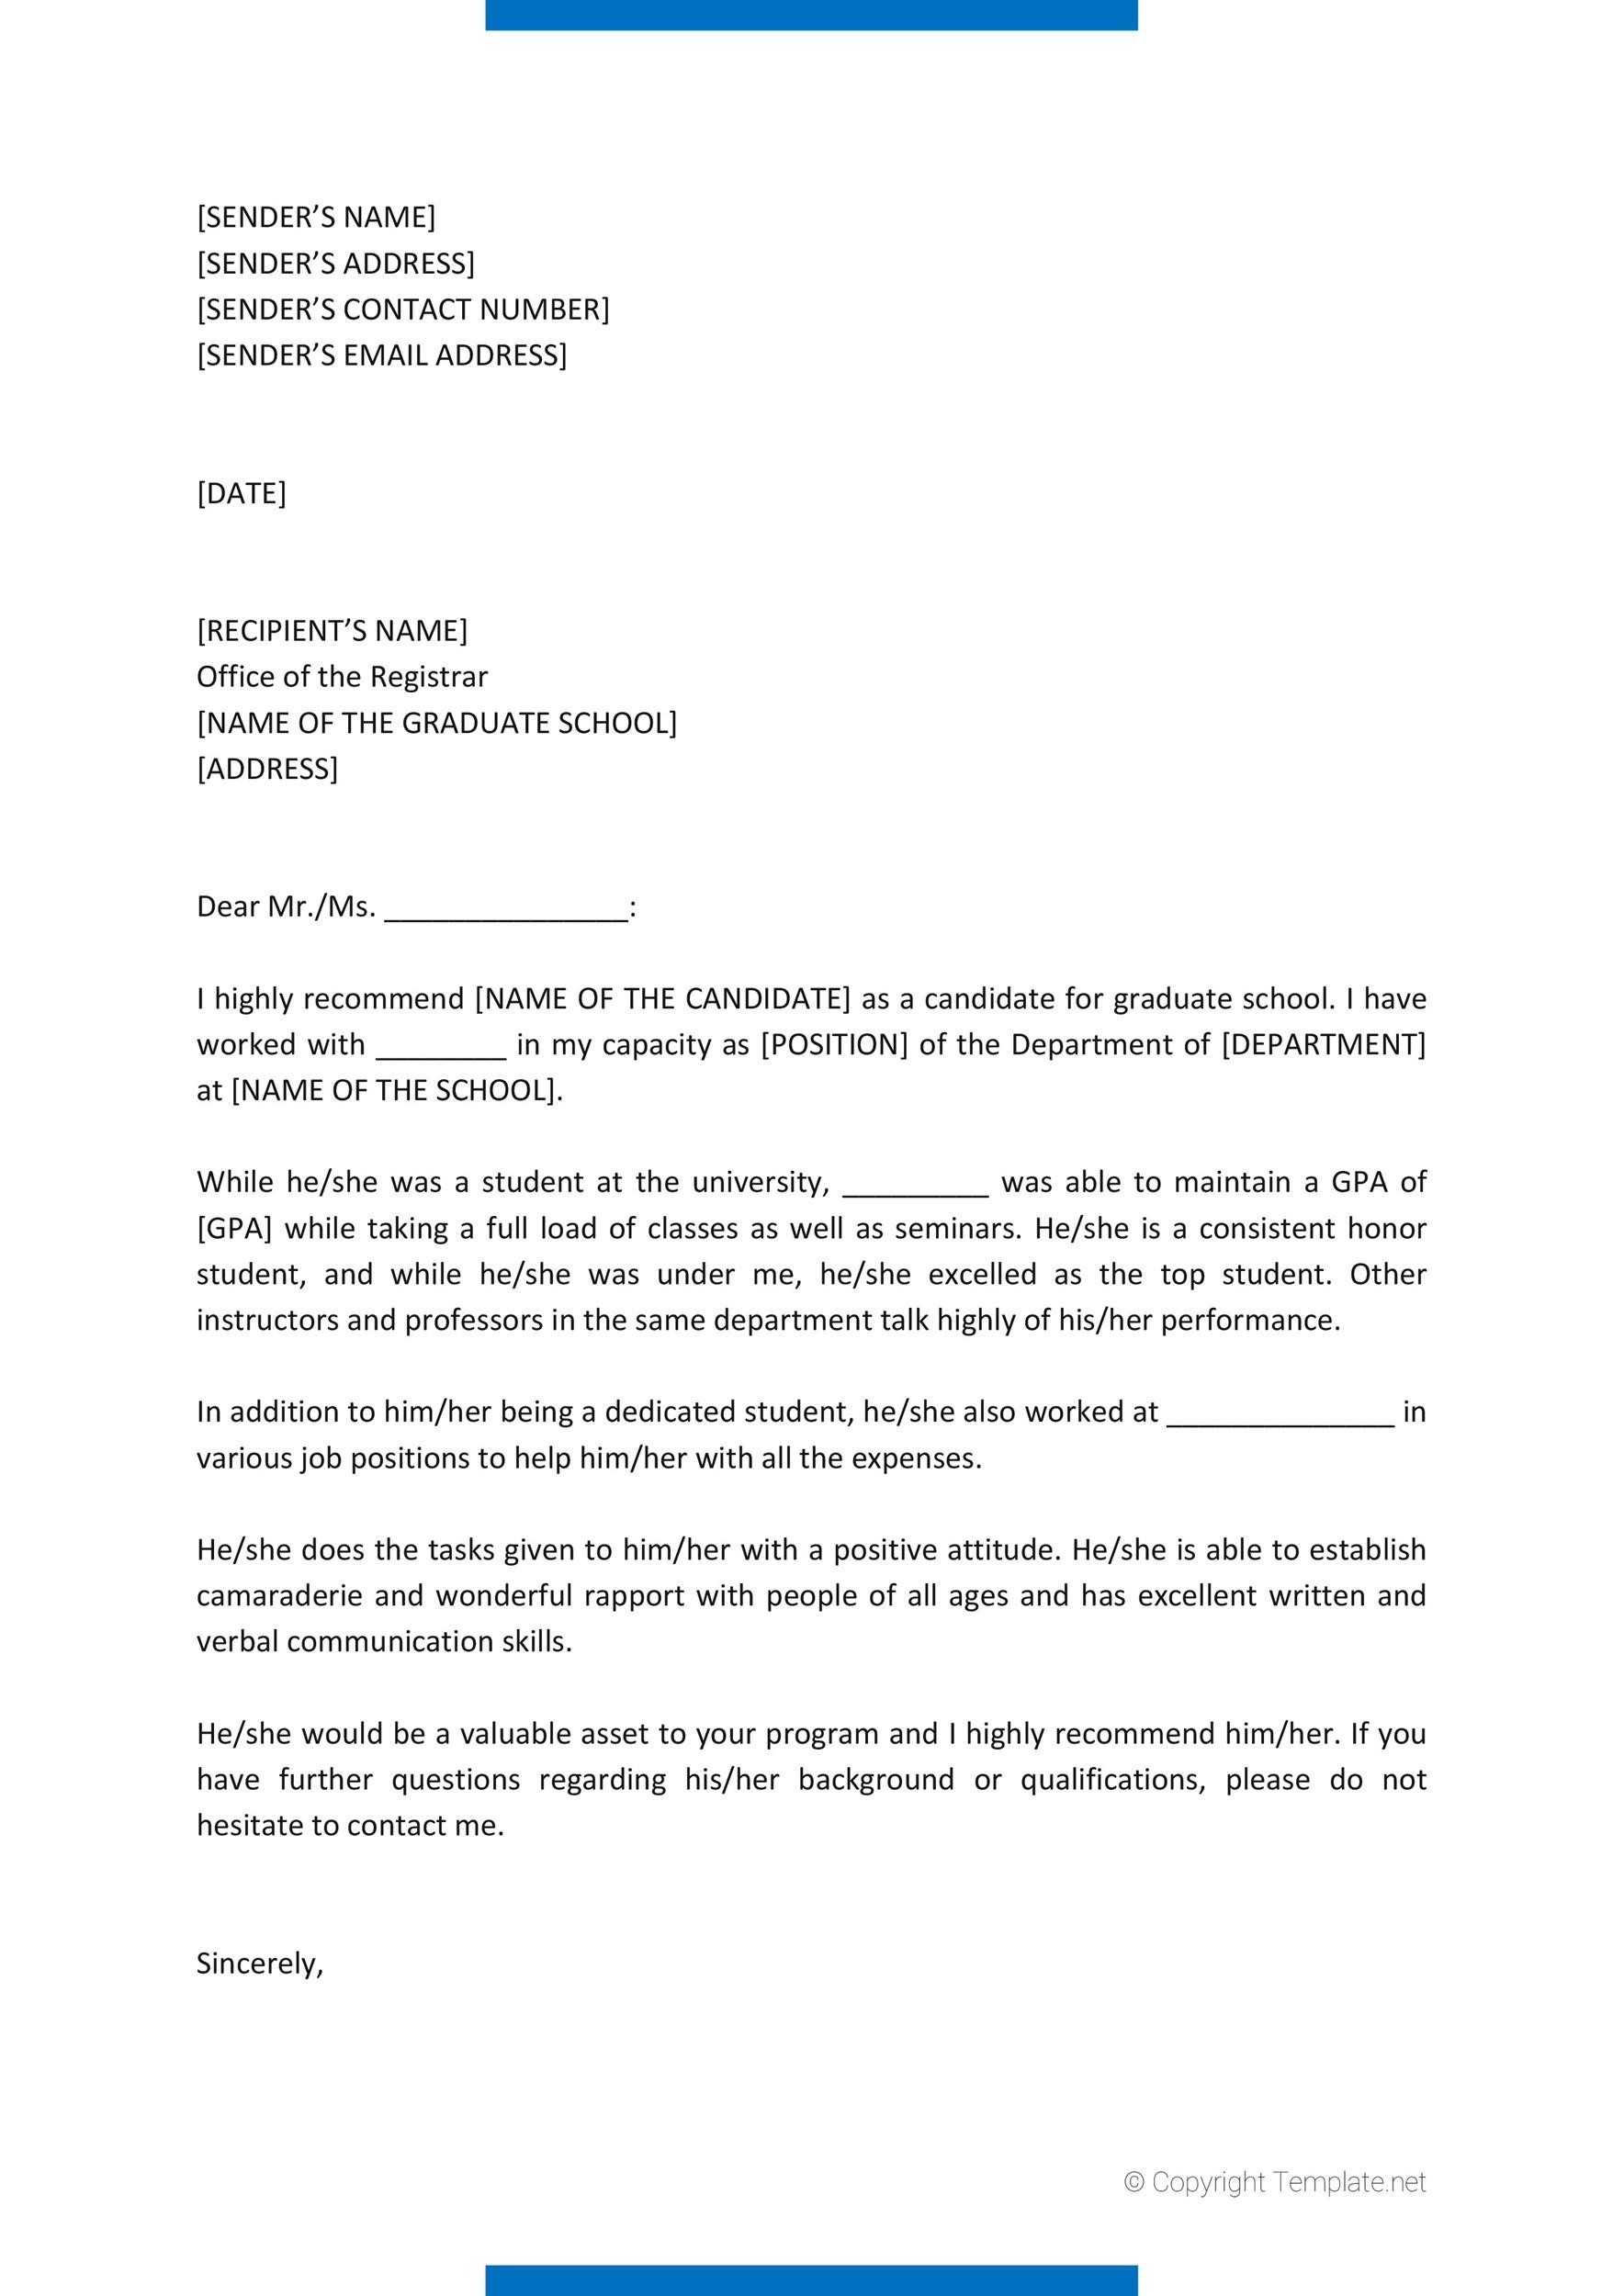 Free Recommendation Letter From Teacher Template 07